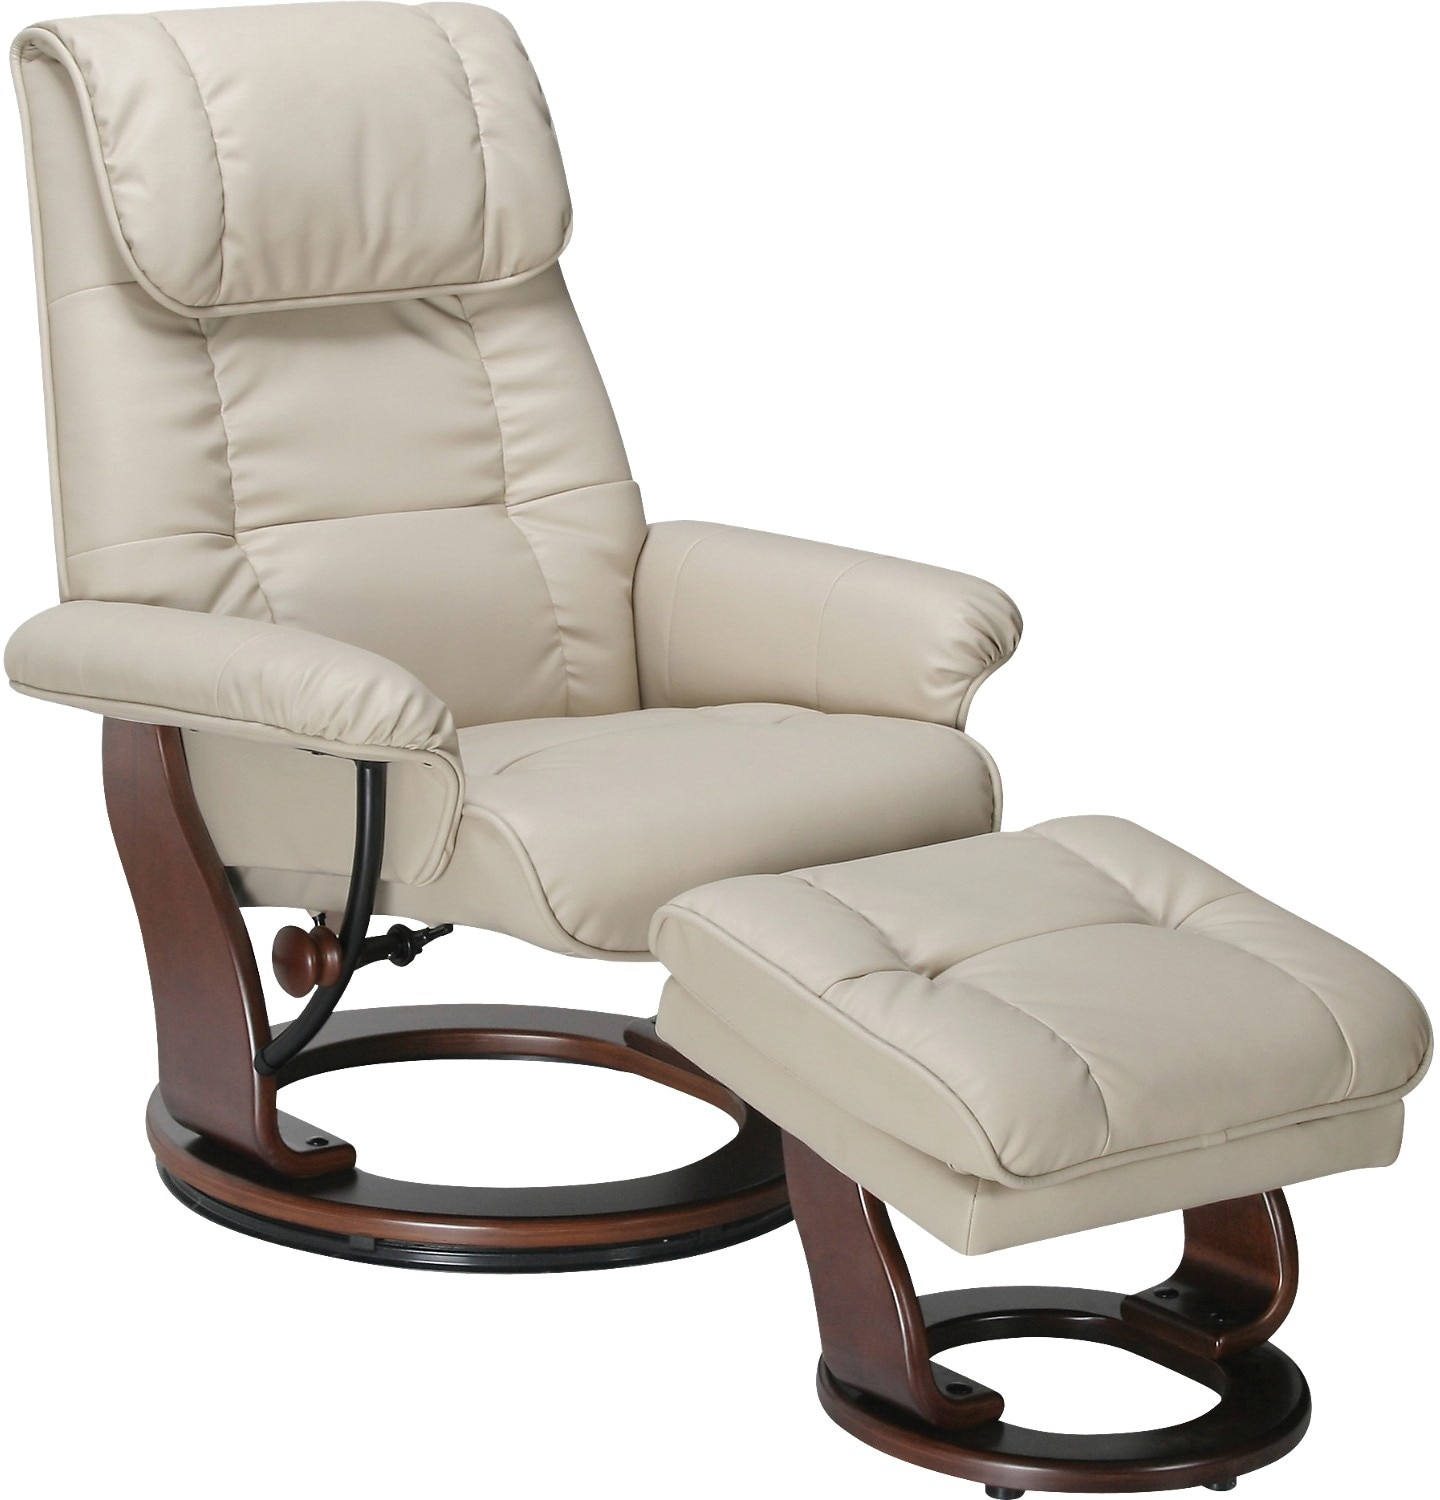 Dixon Taupe Reclining Chair & Ottoman